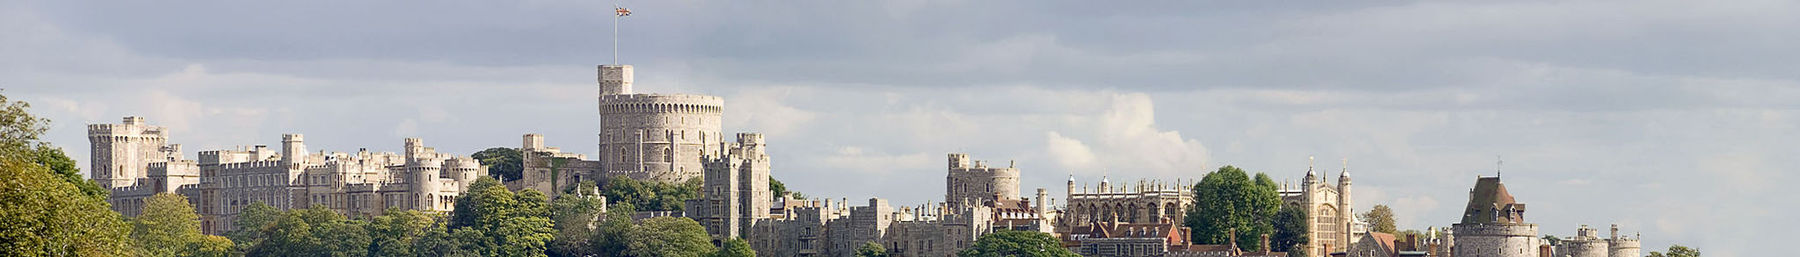 Windsor and Eton Wikivoyage banner.jpg